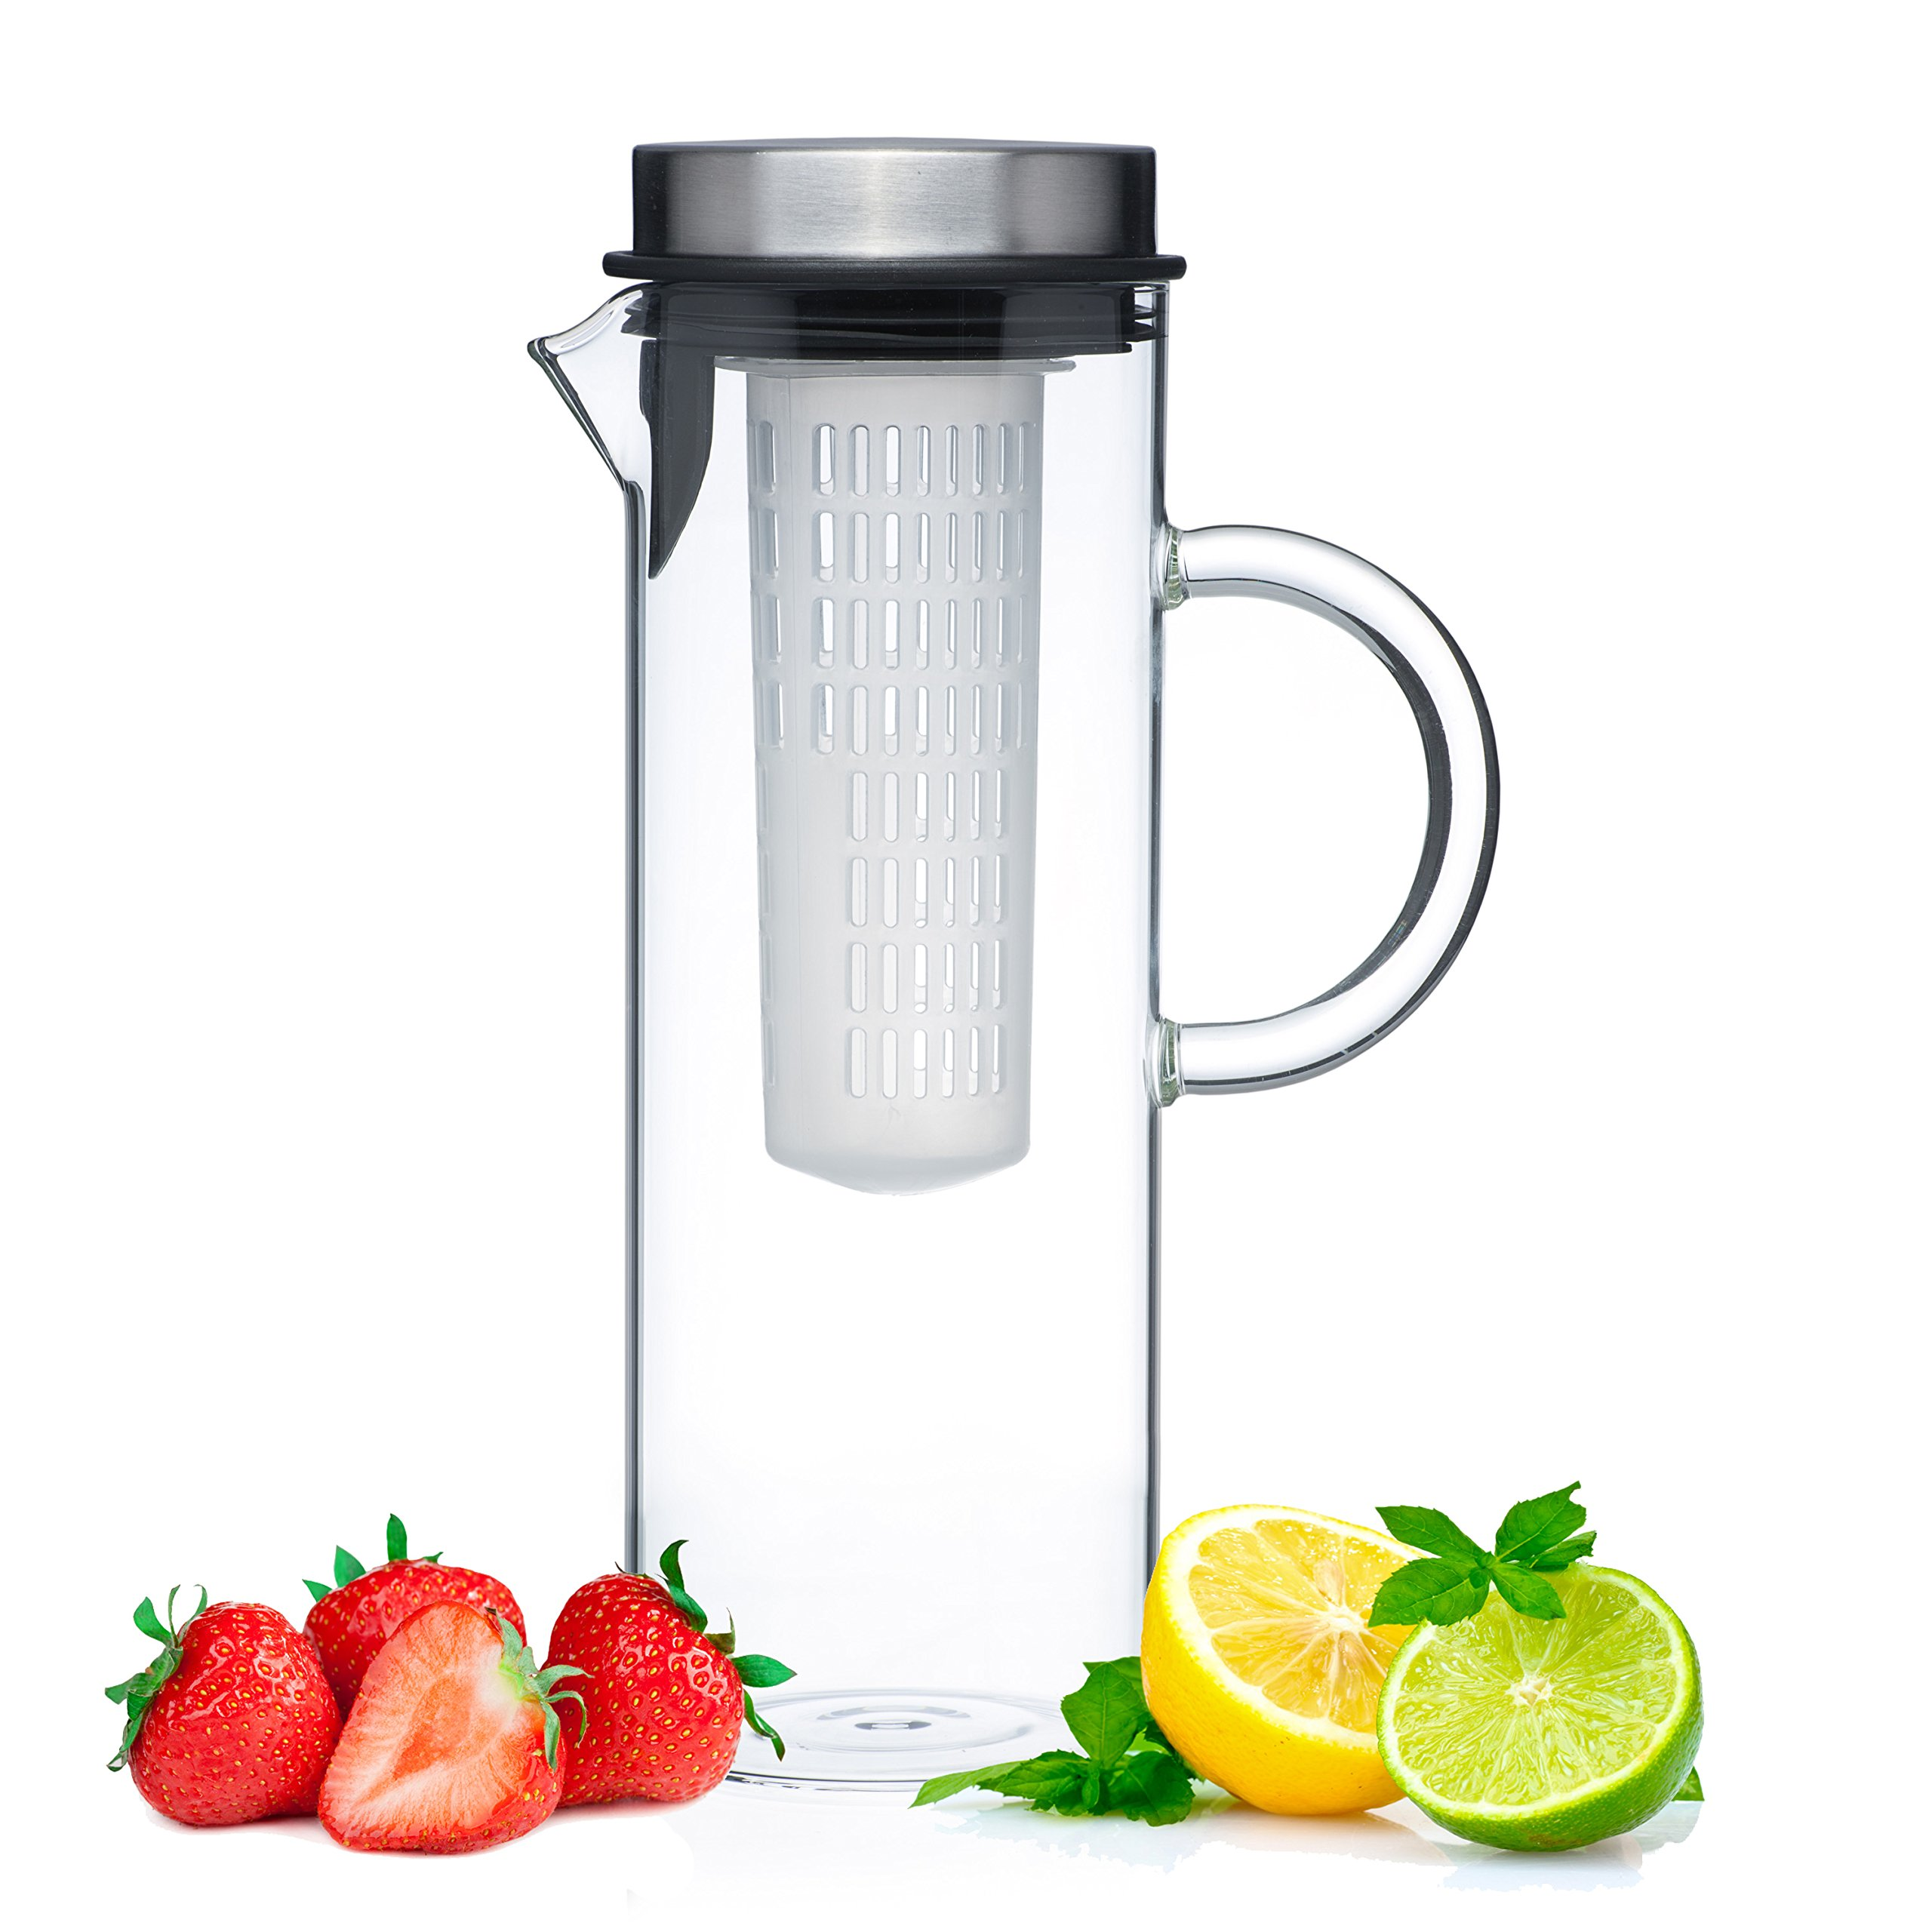 Glass Water Pitcher With Lid & Fruit Infuser Rod - Borosilicate Glass Carafe W/Up To 50Oz/1500ml Capacity - Stainless Steel Lid, BPA FREE Infusion Filter - Perfect For Coffee, Tea, Sangria, Juice